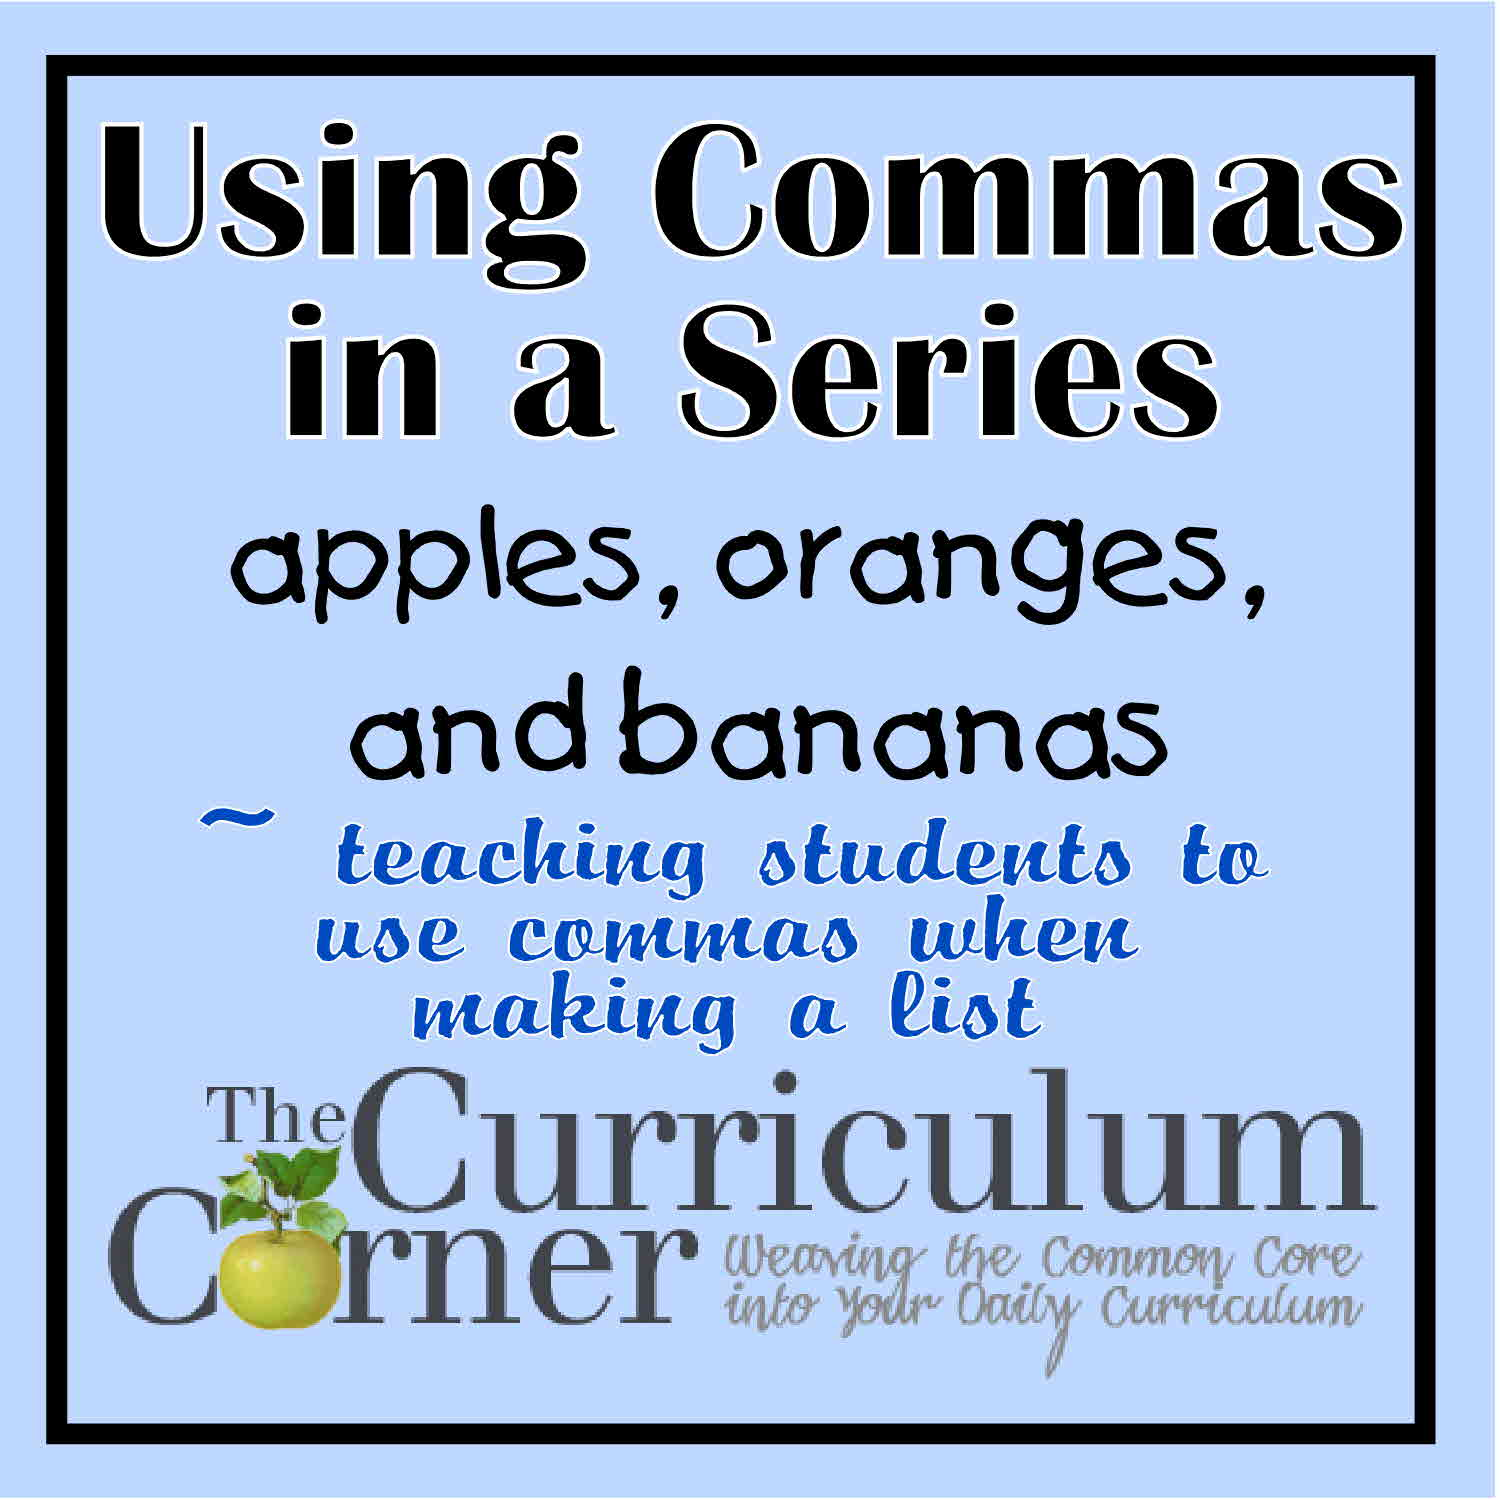 1 J. Writing A Letter And Using Commas - Lessons - Tes Teach